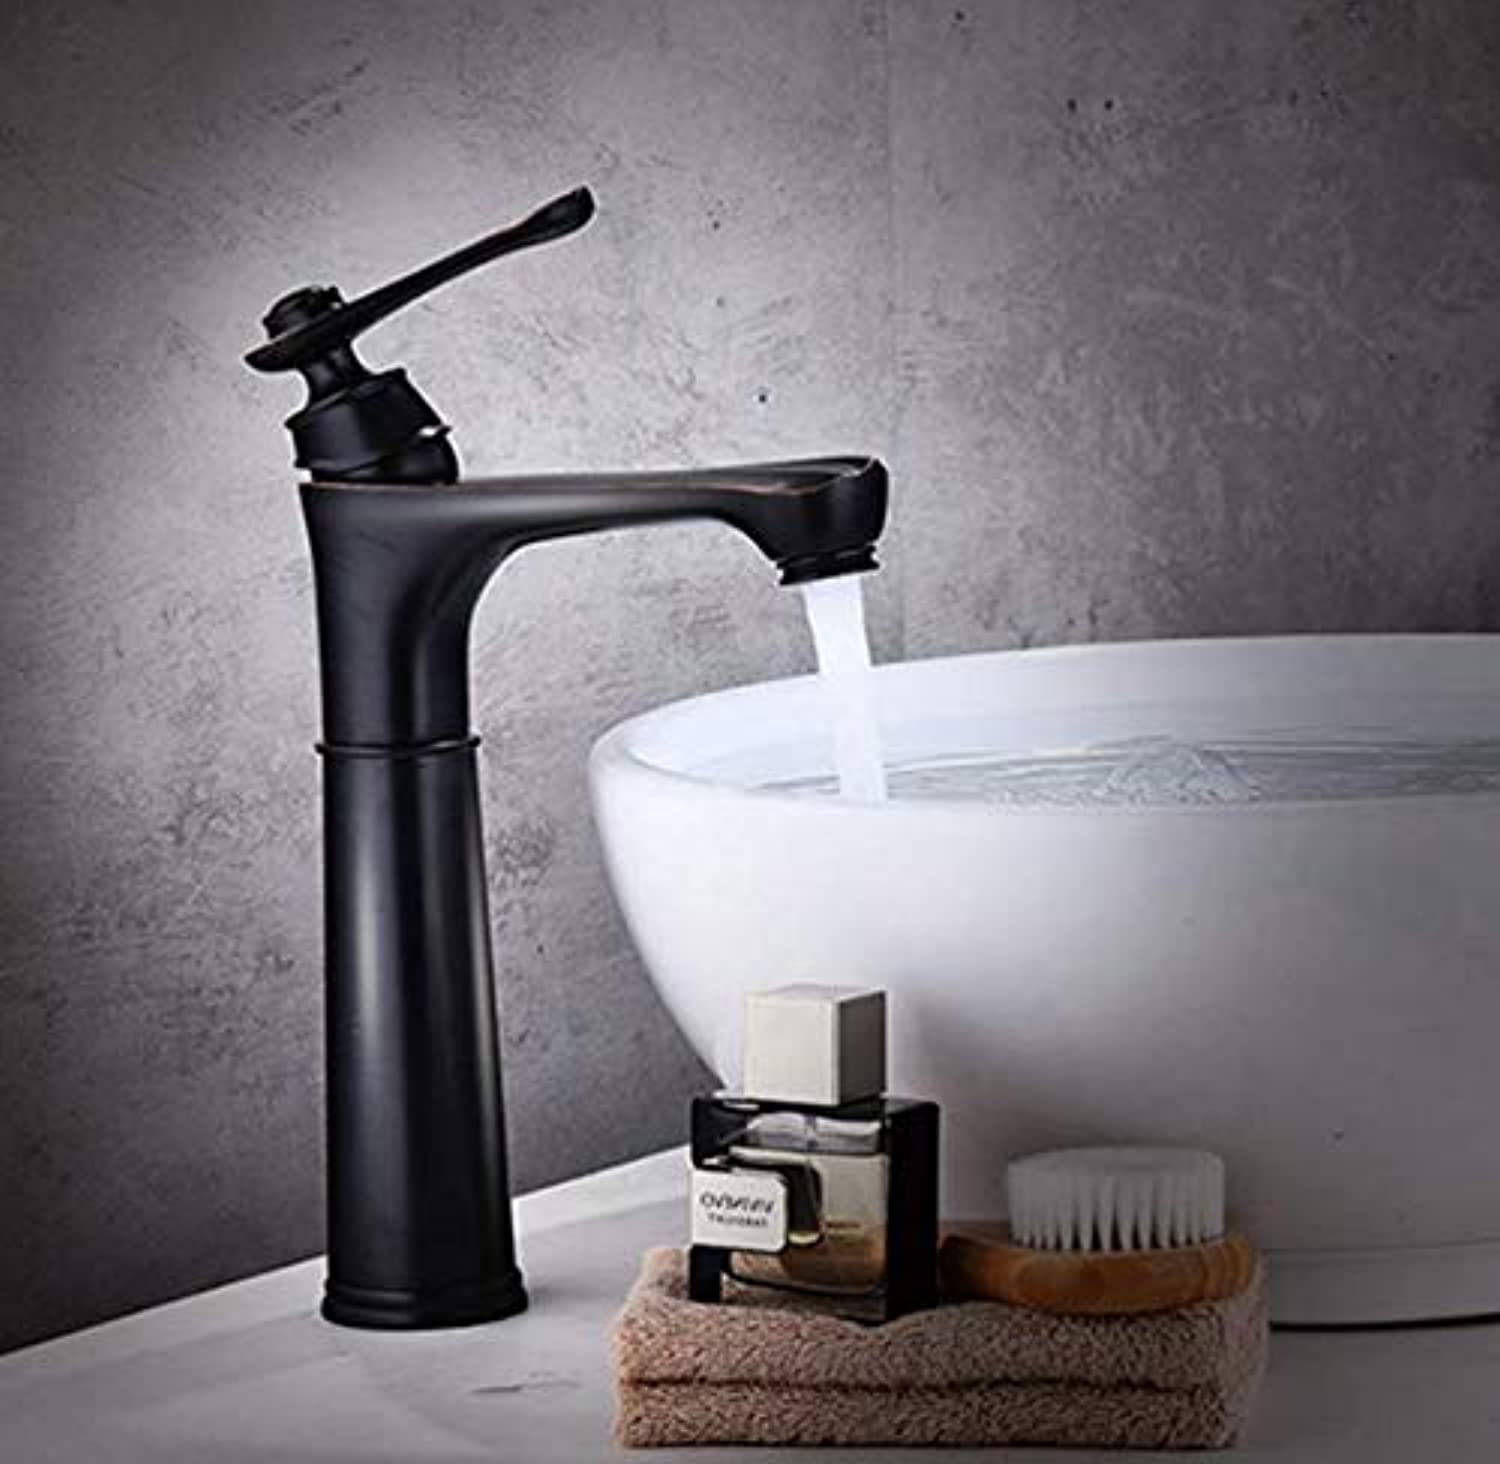 Thermostatic Faucet Sink Washbasin Faucet Brass Copper Basin Faucet Stunning Garden Kitchen Sink